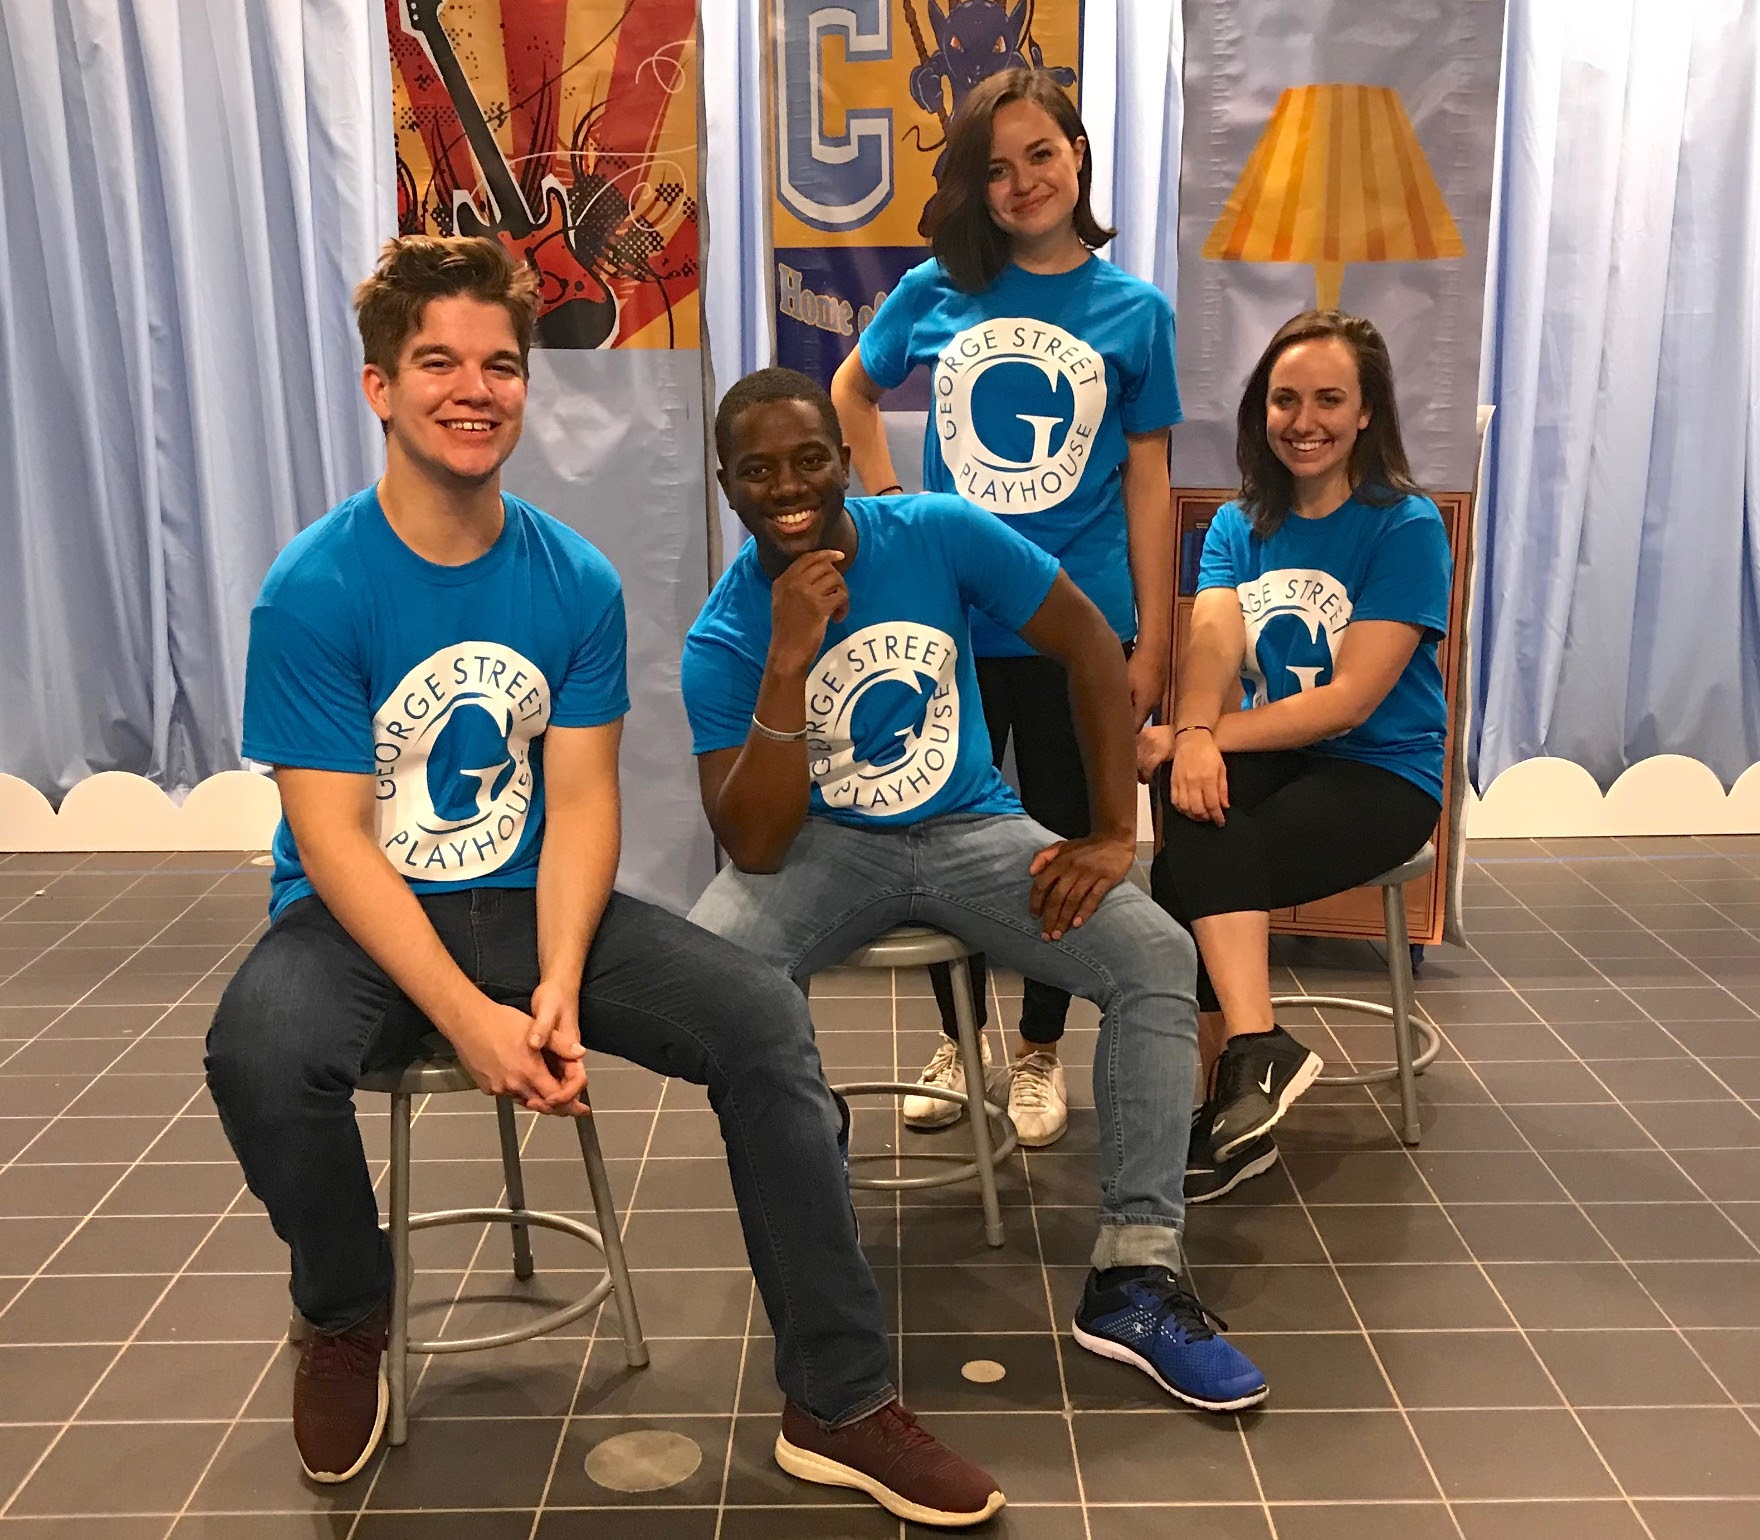 The Houston cast of George Street Playhouse's Austin the Unstoppable: (L to R) Mason Butler, Danté Anderson, Katie Lugo and Carol Foose. (Photo: George Street Playhouse)